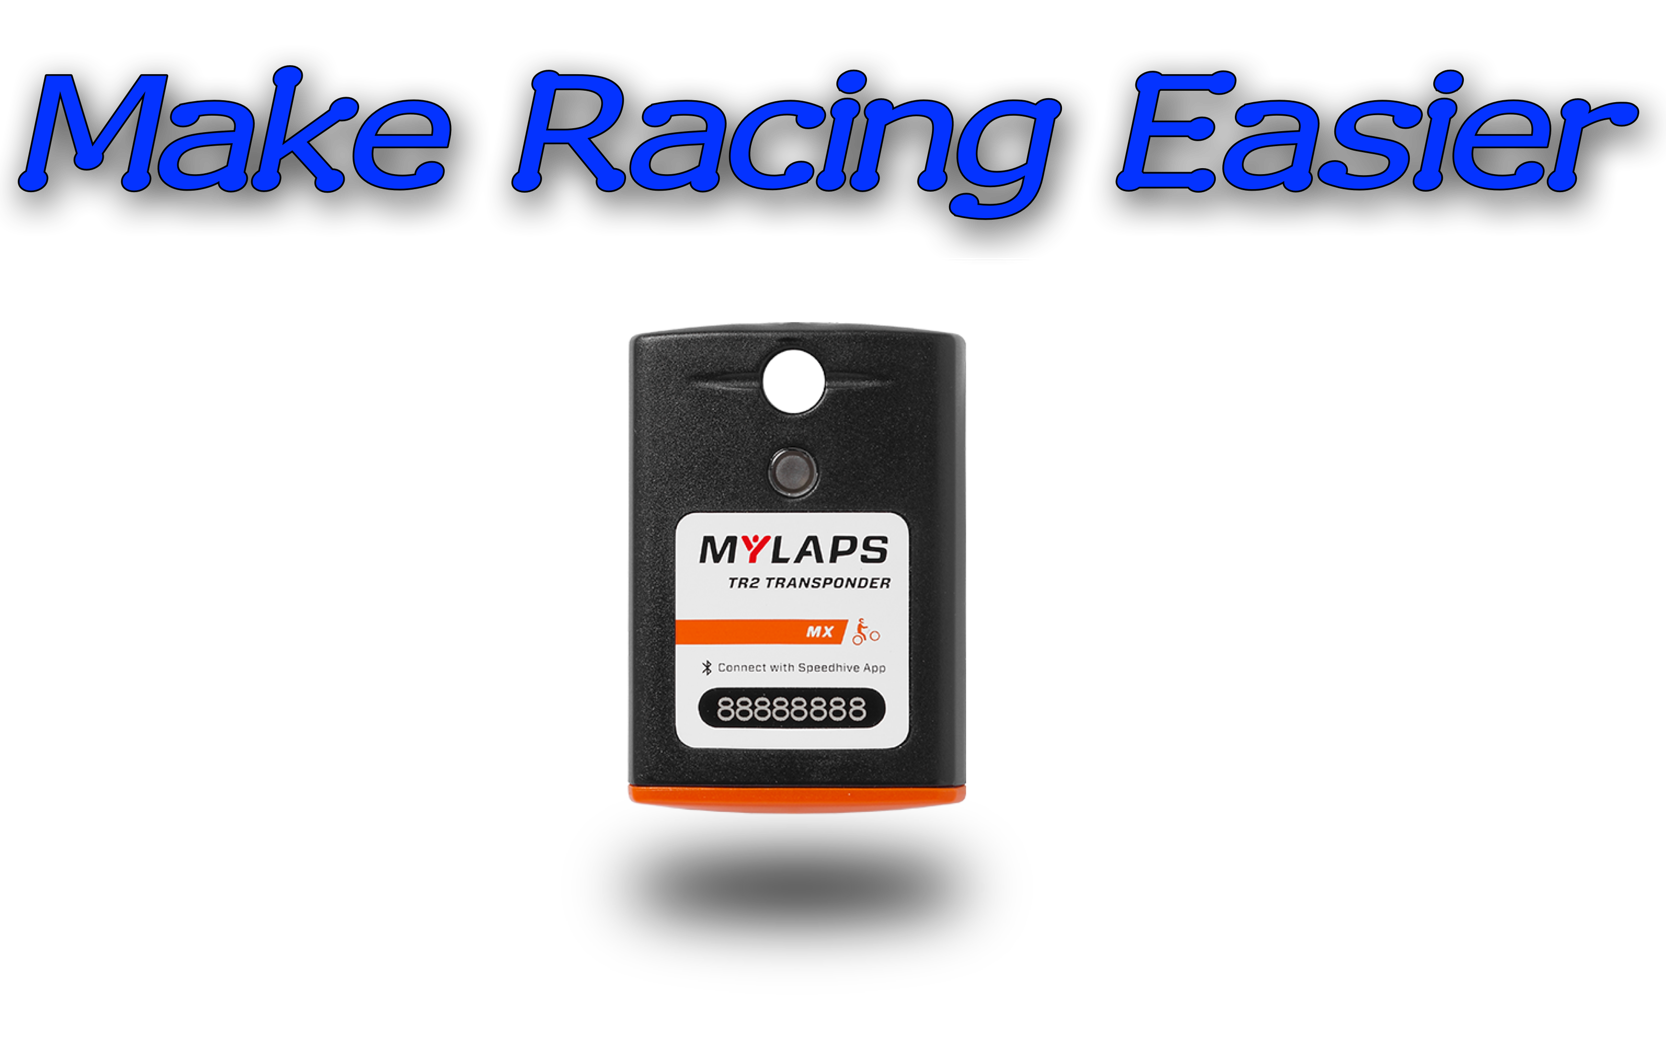 MyLaps TR2 Buy Now - The new standard in sports timing! The TR2 Transponder is the newest and most innovated transponder for motorsports. Reliable hardware, easy subscription management via Bluetooth and the Speedhive App and flexible subscription options to fit your needs.